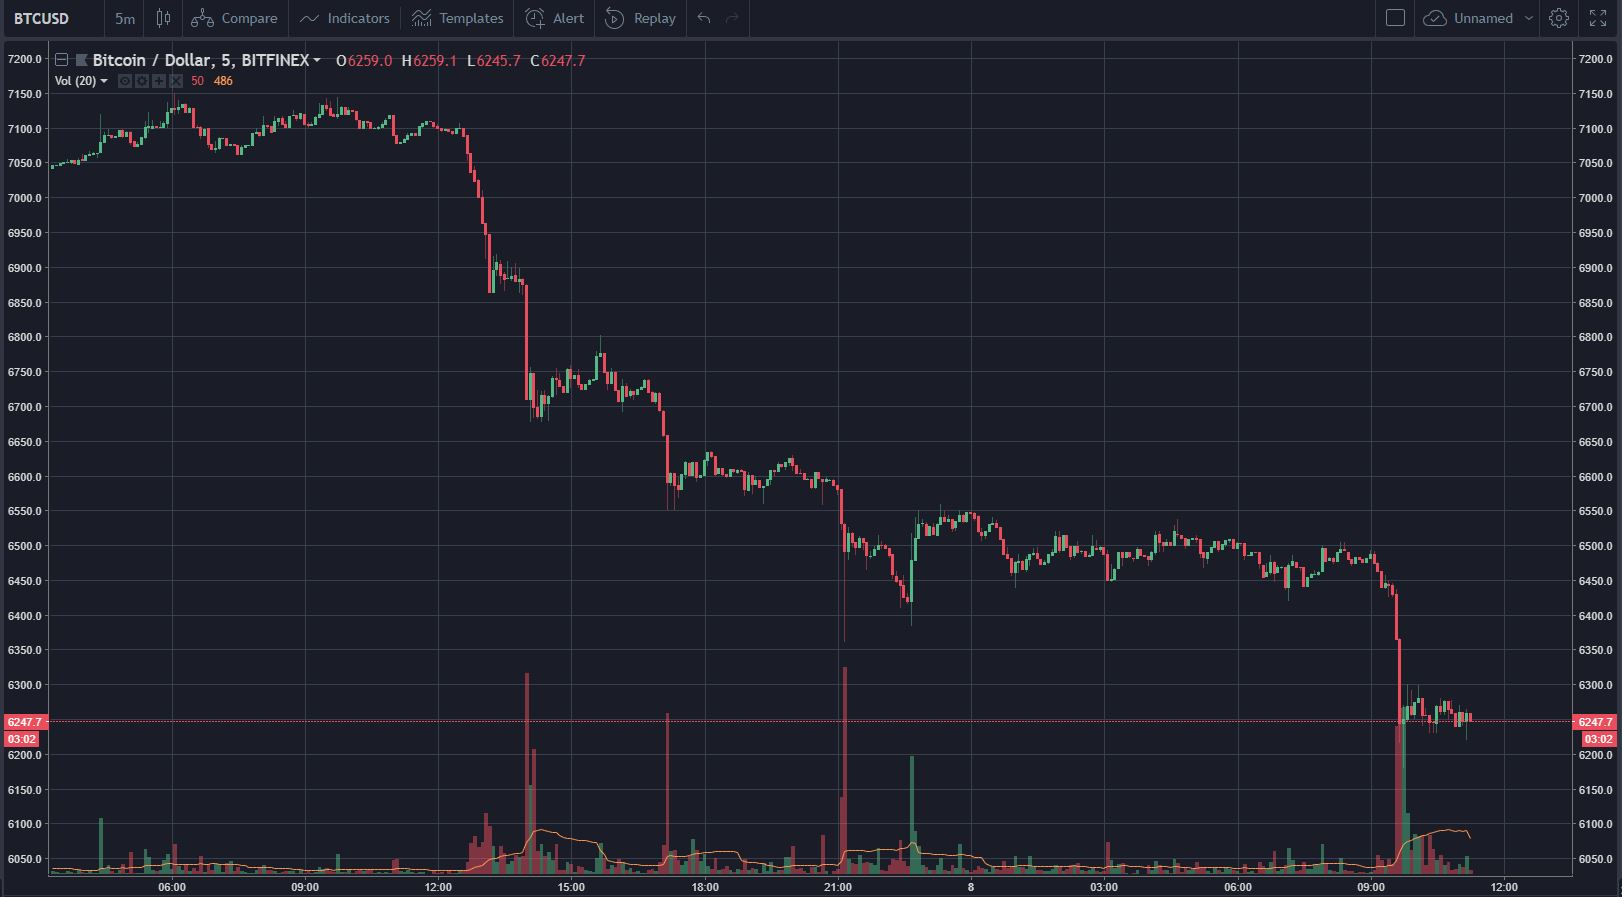 Stormy Markets — Volume Picks Up As Bitcoin (BTC) Drops To $6,200 14